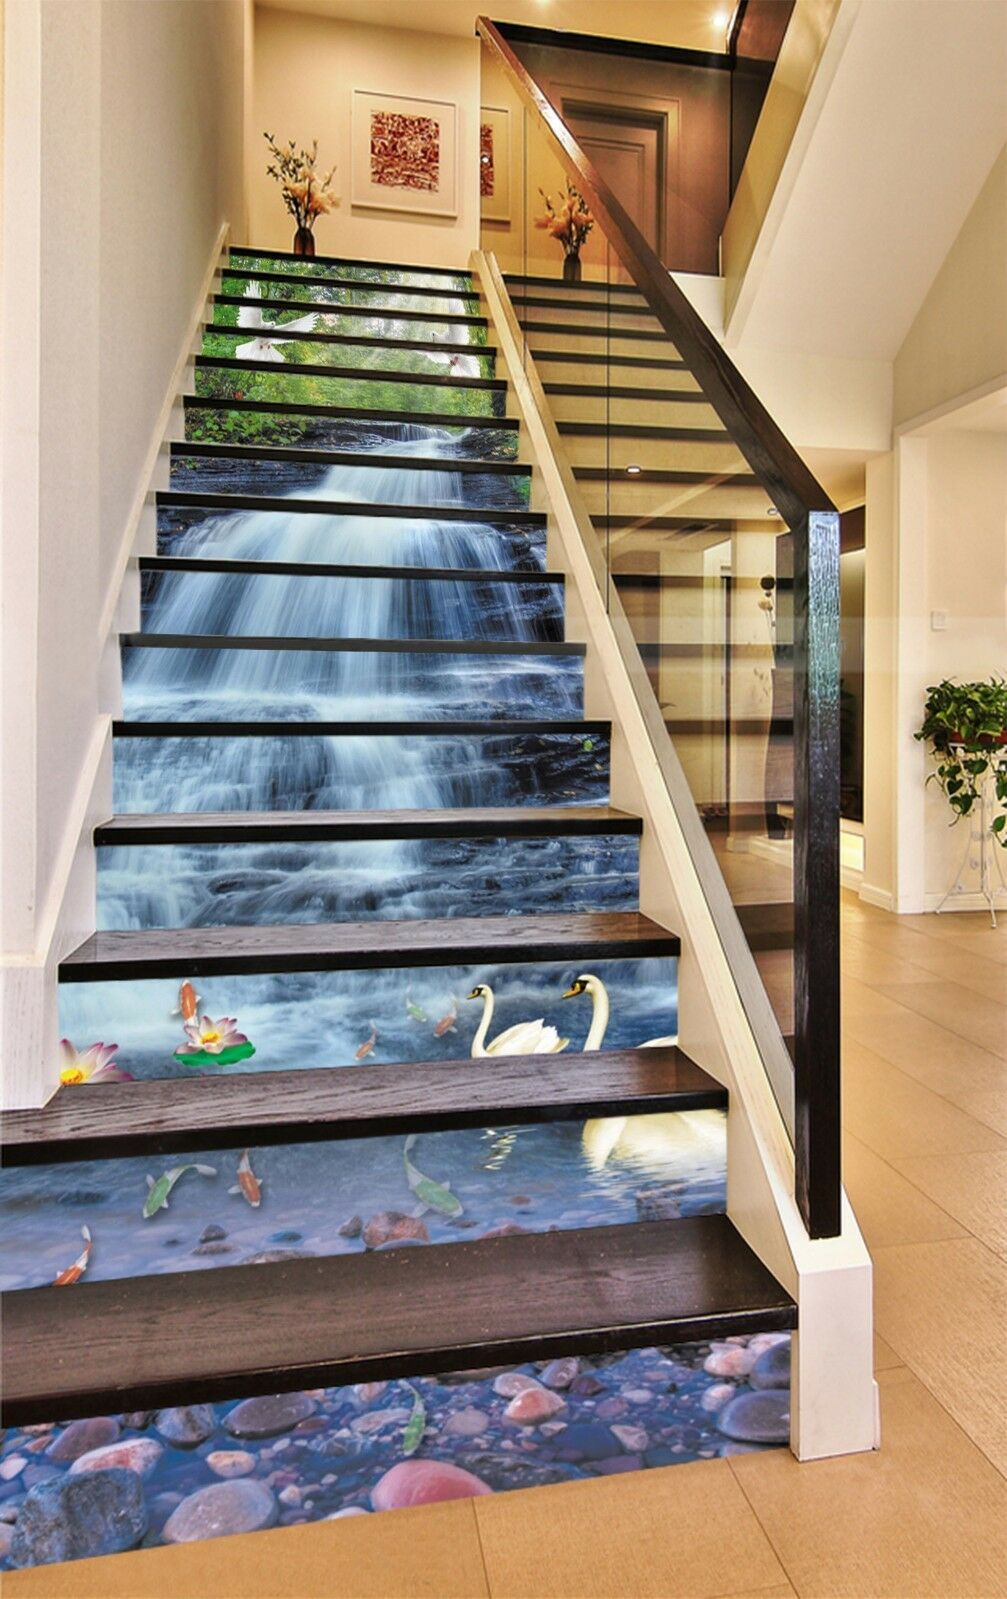 3D Waterfall Sawn 5 Stair Risers Decoration Photo Mural Vinyl Decal Wallpaper CA